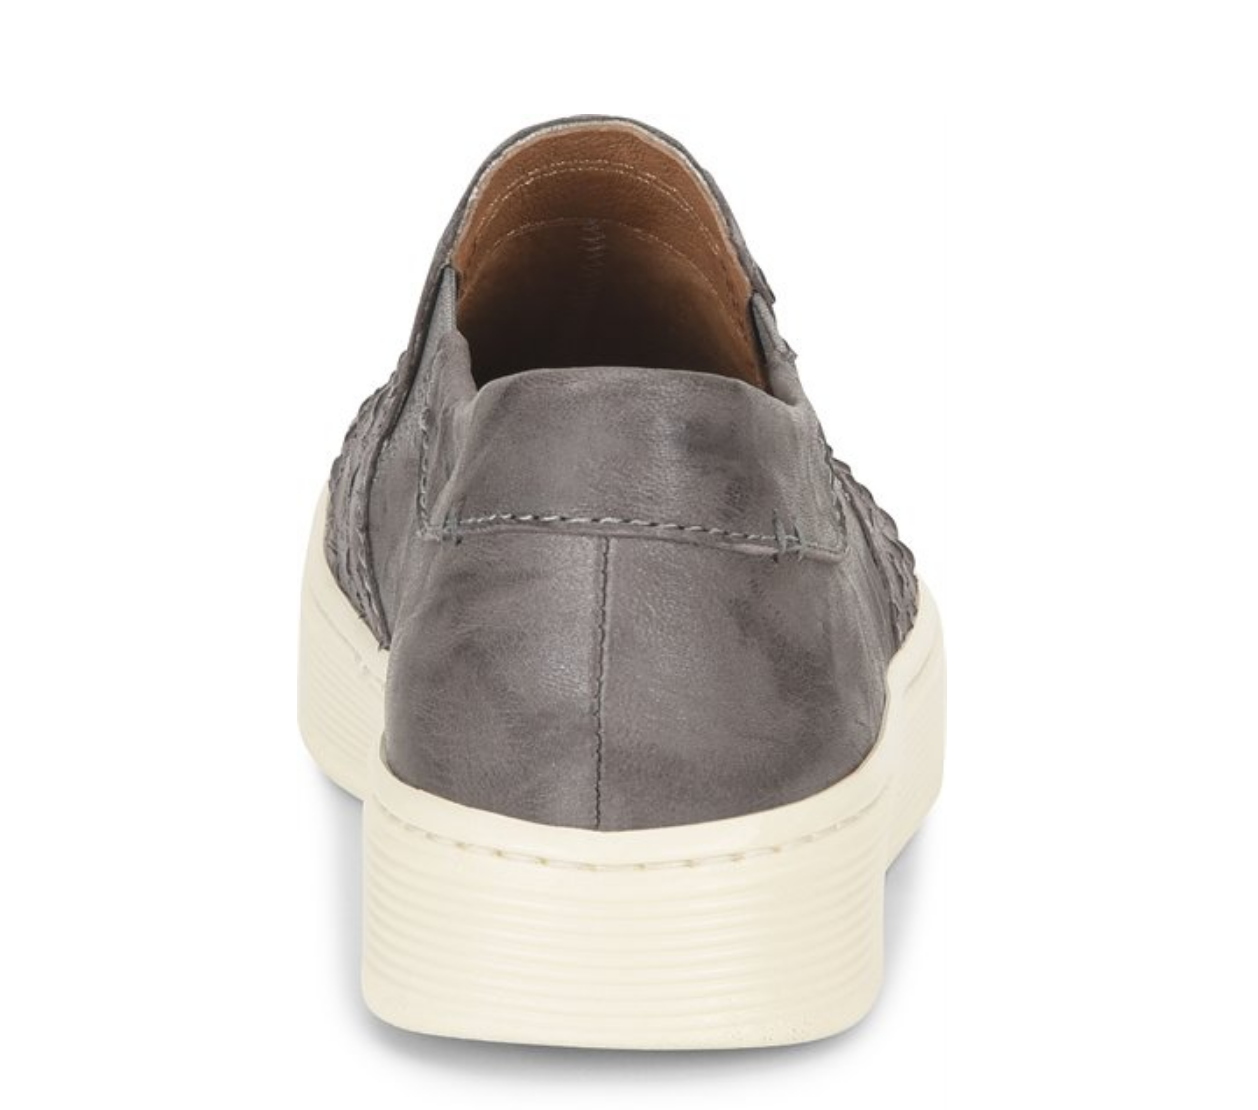 Sofft Shoe Company Sofft Somers III - Charcoal